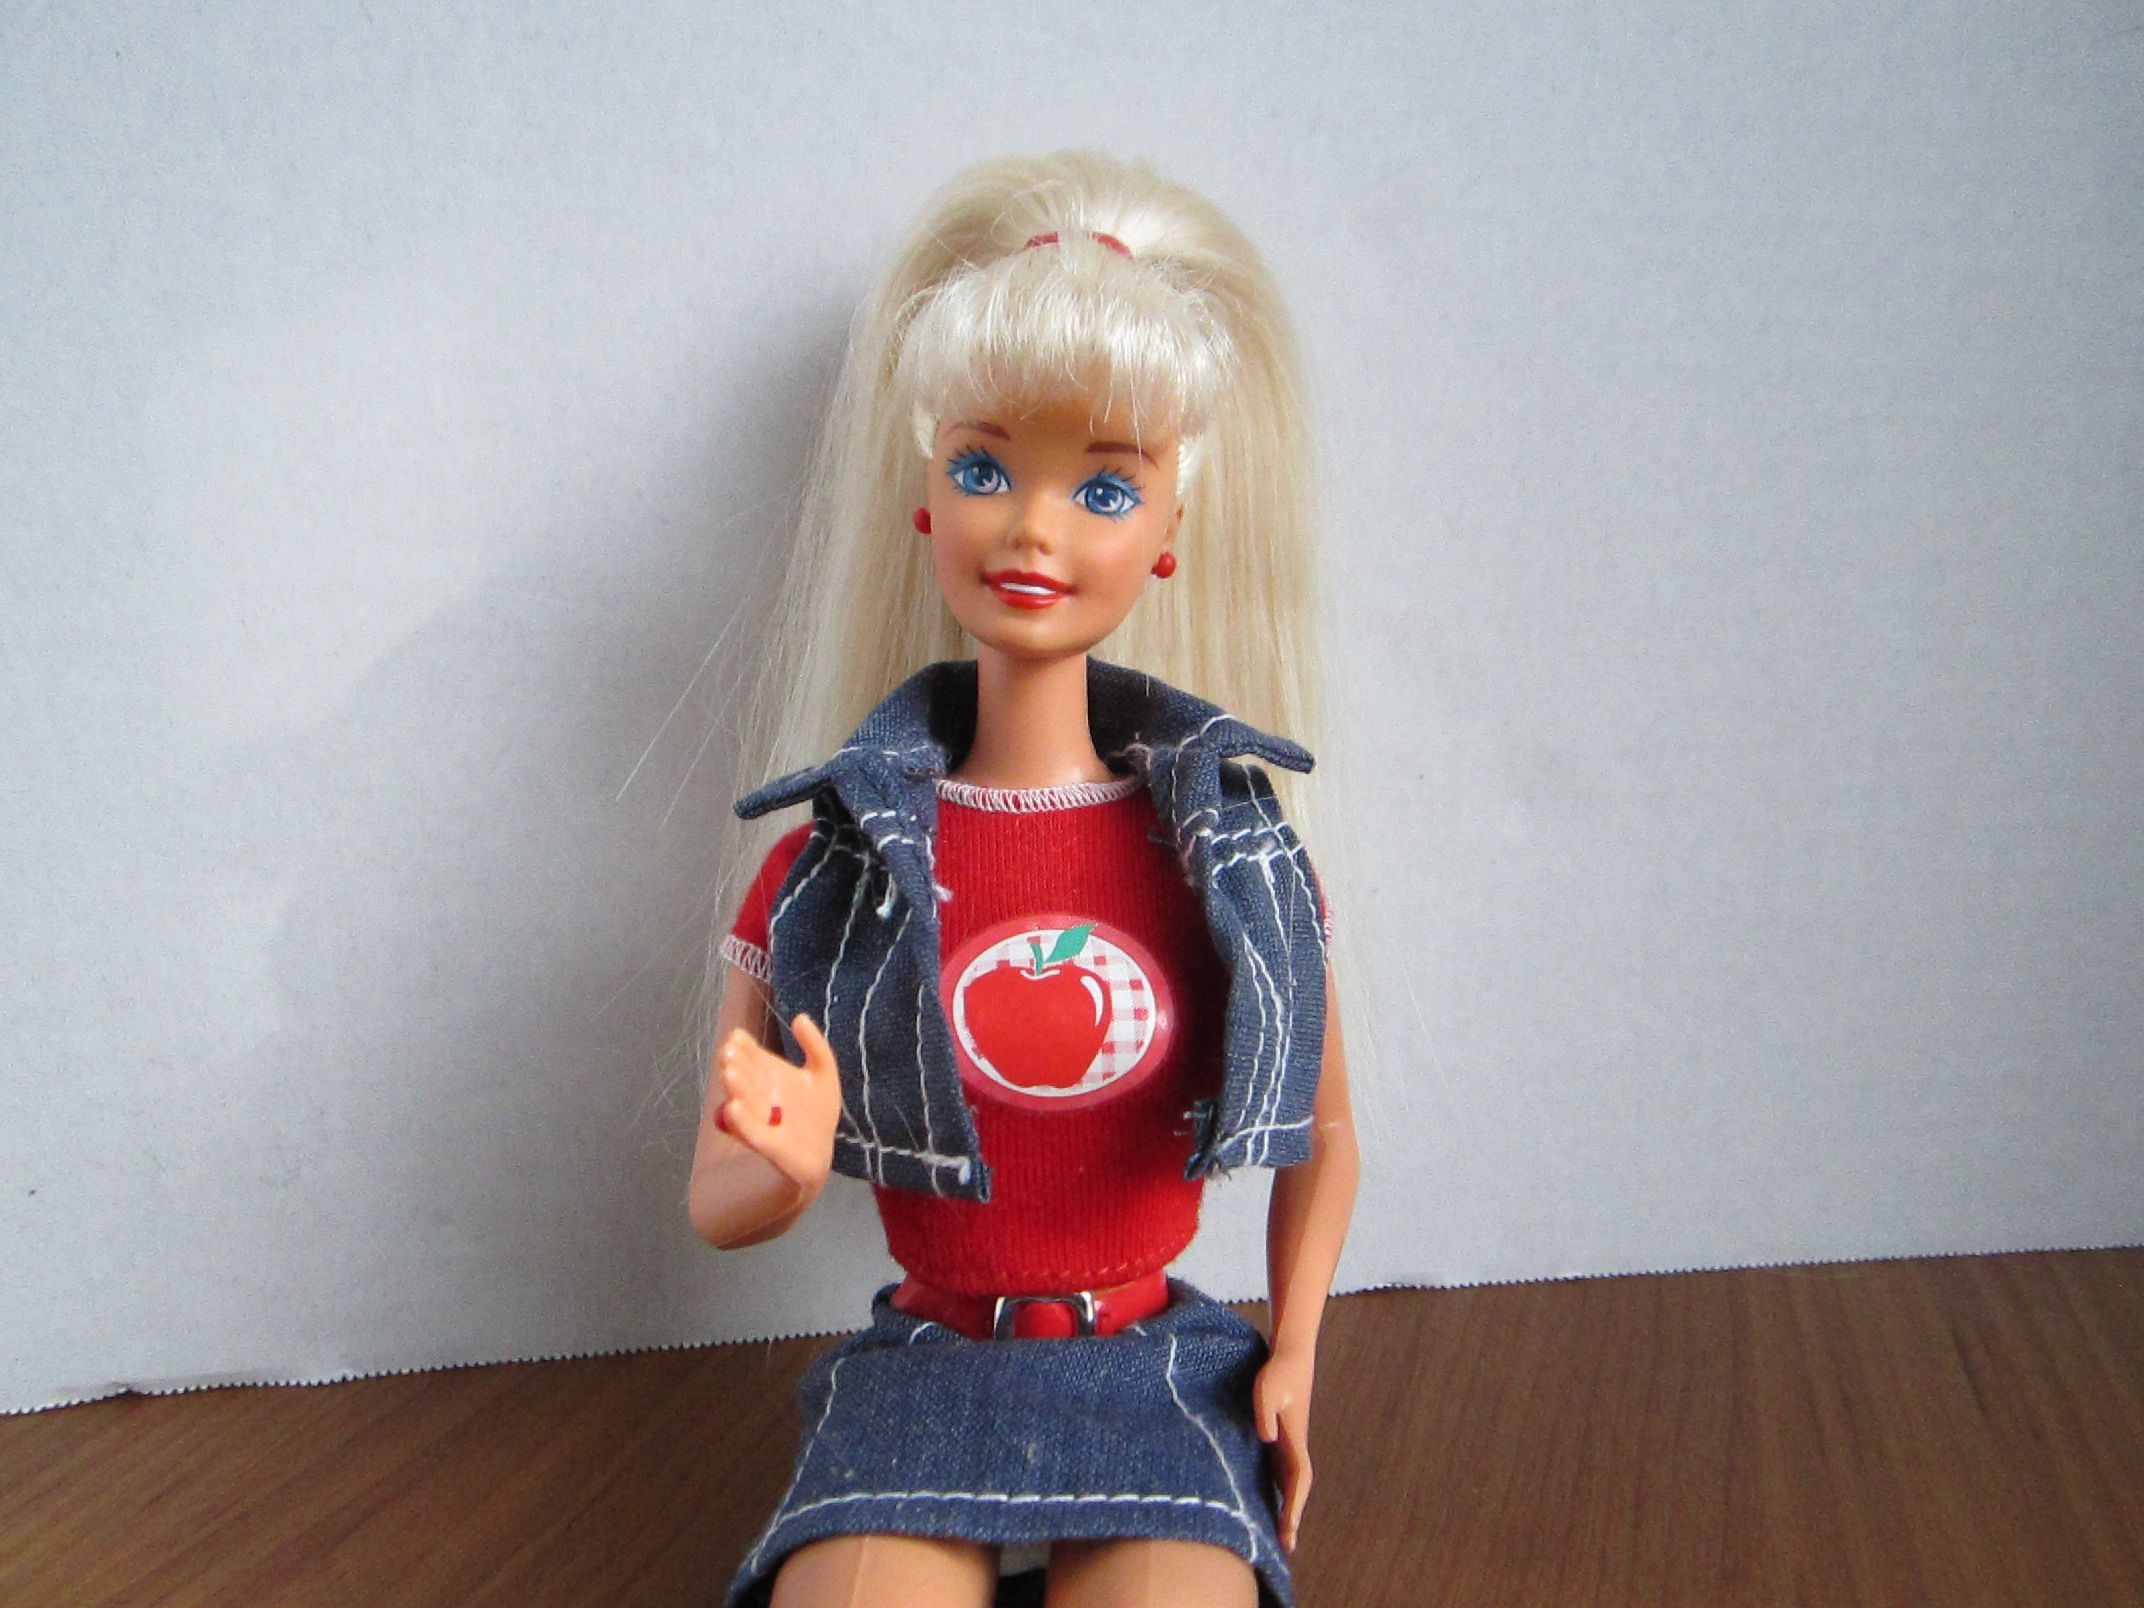 vintage plastic beautiful doll toy mattel collectible present gift decoration home decor interior